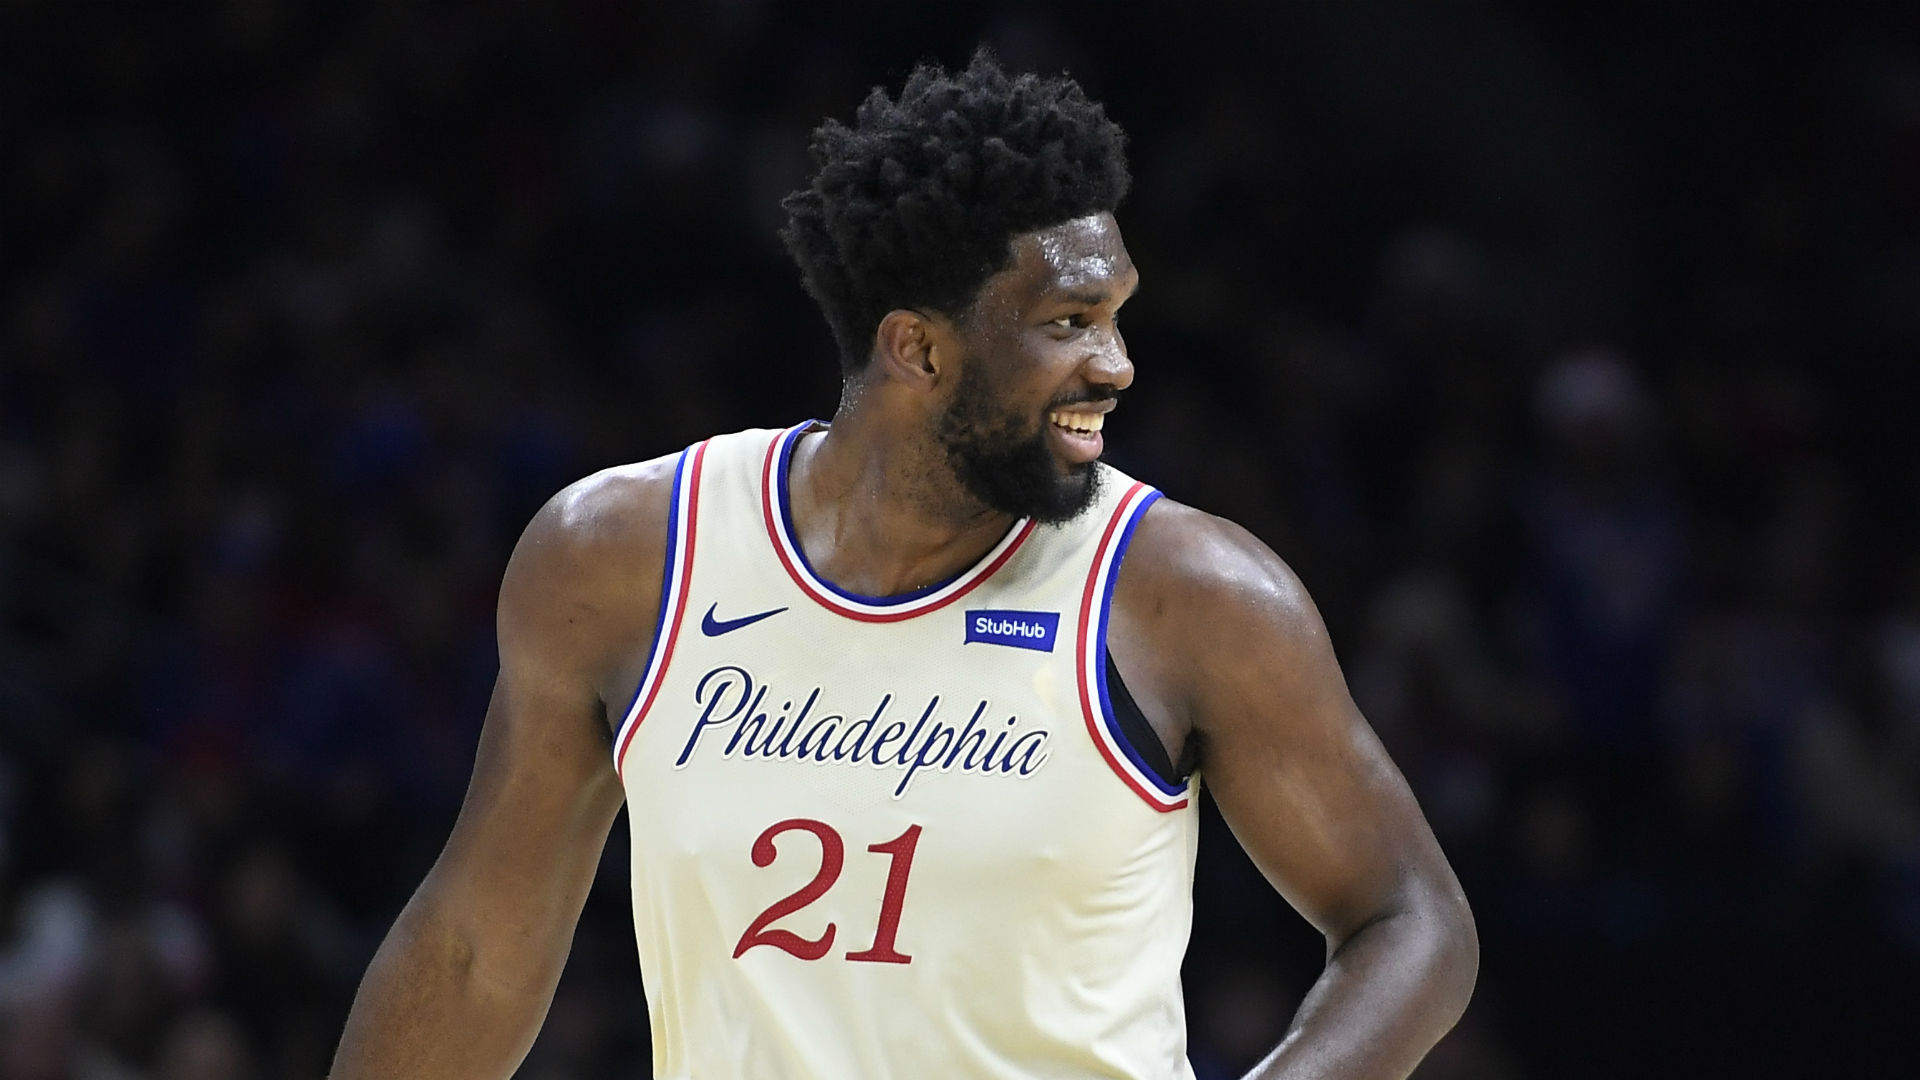 Brett Brown had high praise for Joel Embiid's training and conditioning, while he provided an update on Ben Simmons.